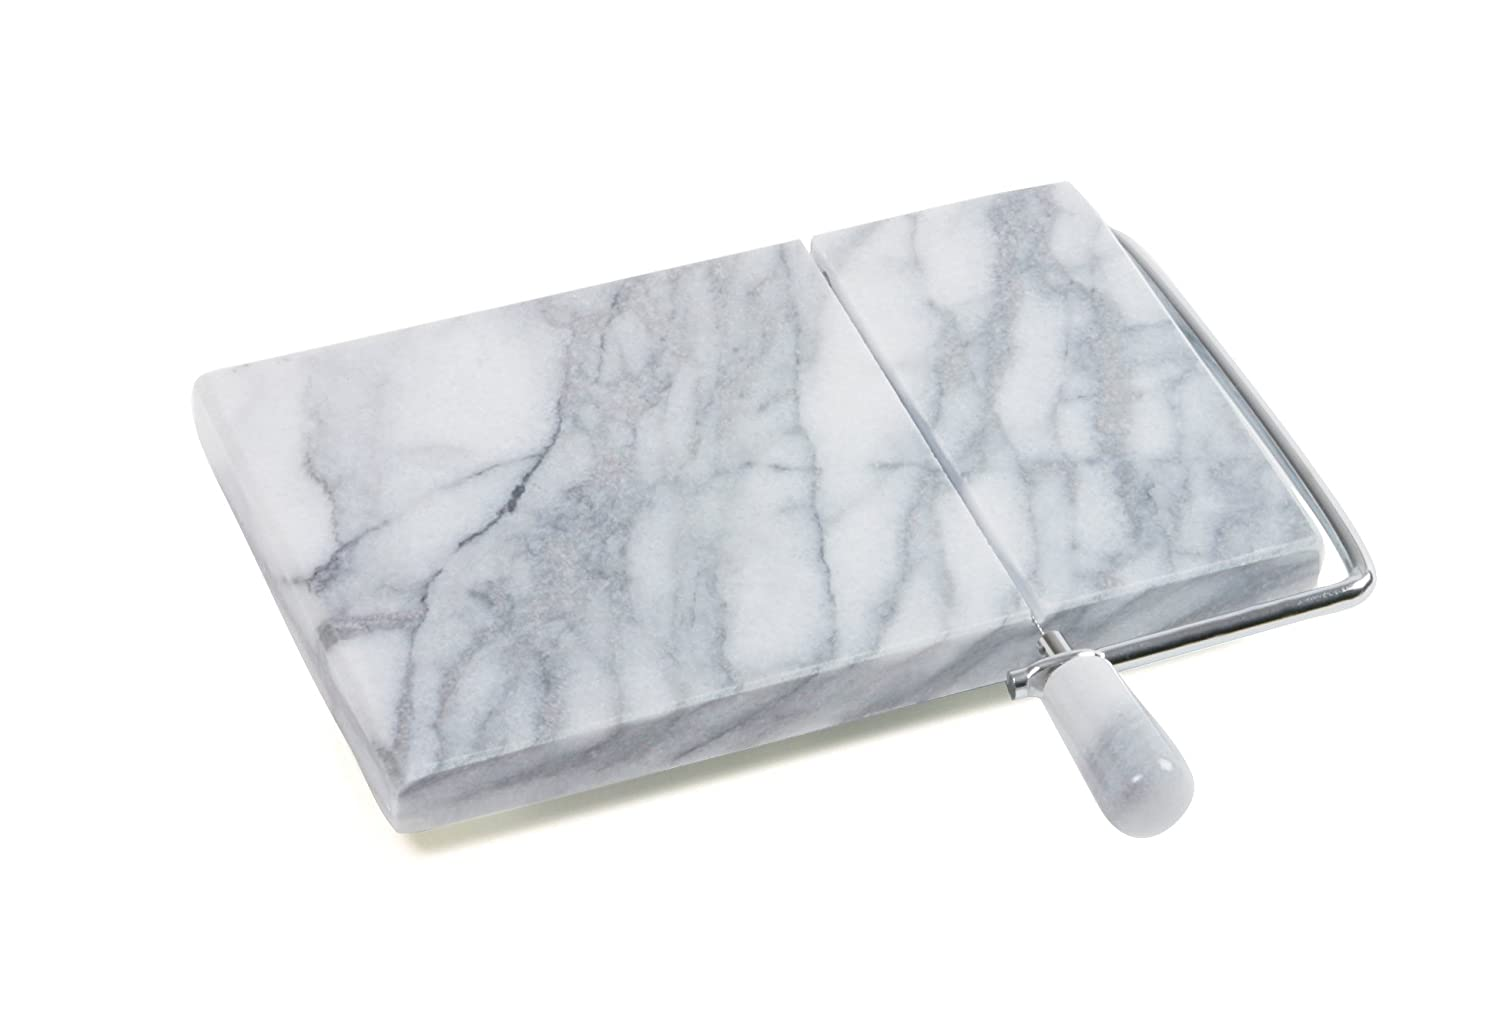 Amazon.com: Norpro 349 Marble Cheese Slicer: Kitchen & Dining